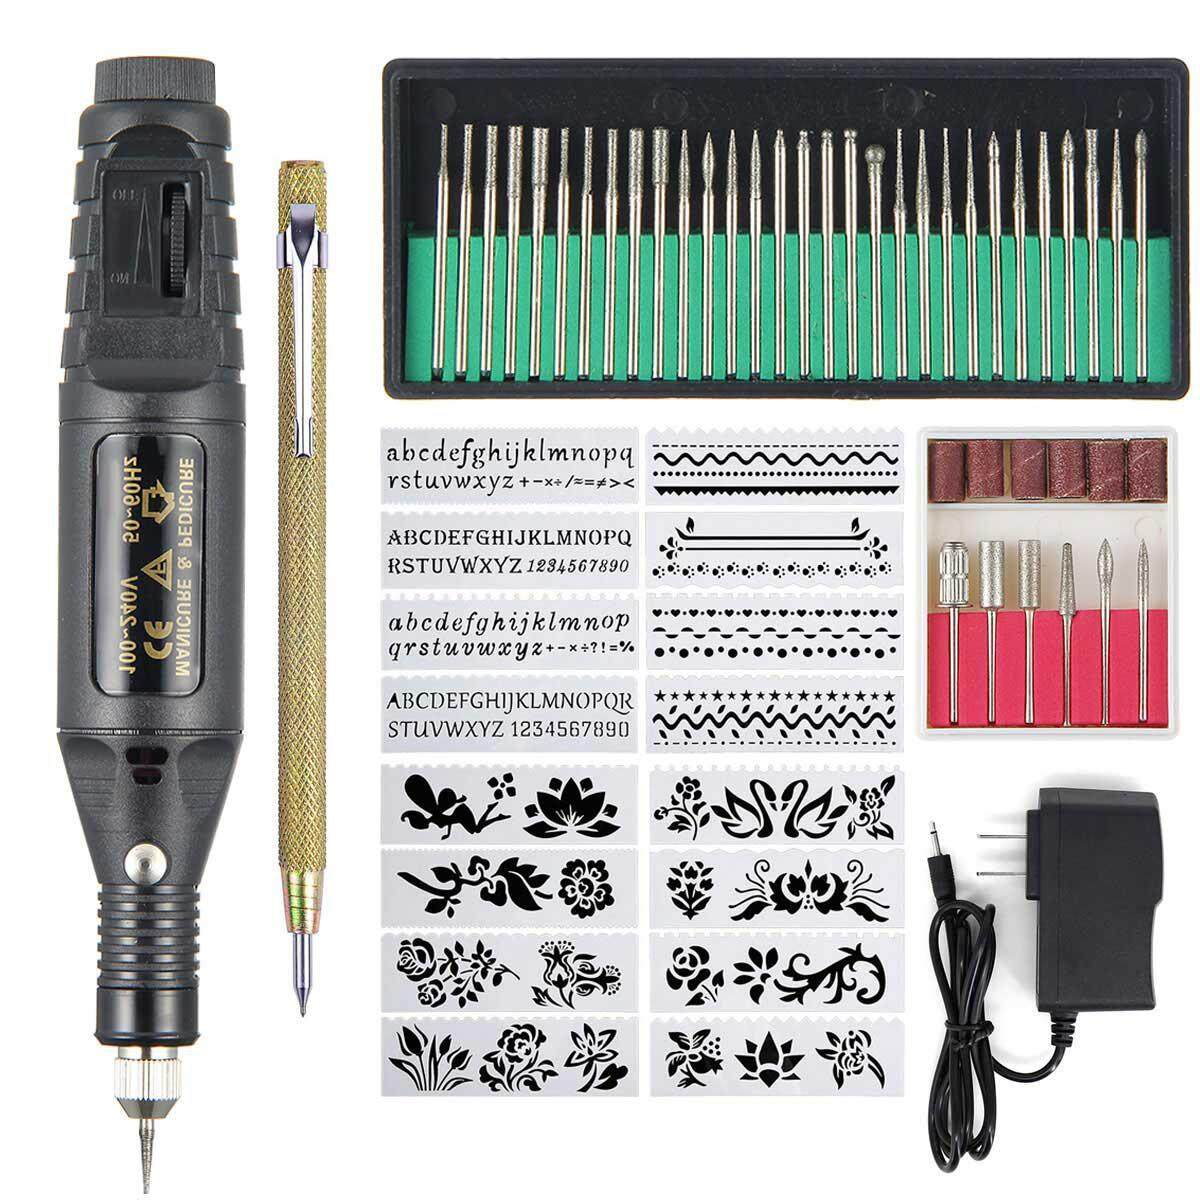 Engraving Tool Kit Multi-Functional Electric Corded Engraver Pen DIY Rotary Tool